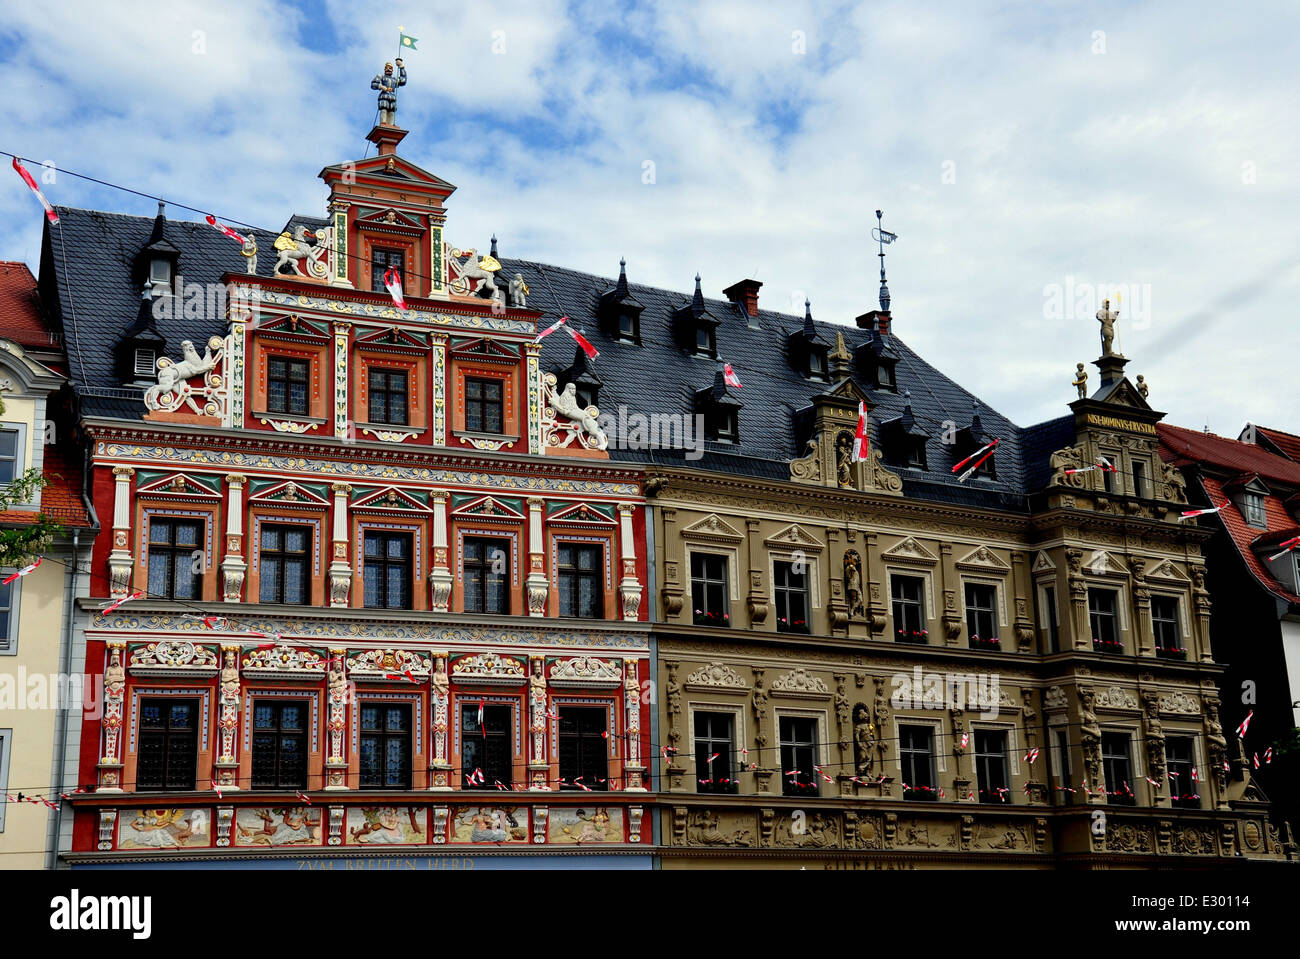 erfurt germany renaissance zum breiten herd haus with bas relief stock photo royalty free. Black Bedroom Furniture Sets. Home Design Ideas